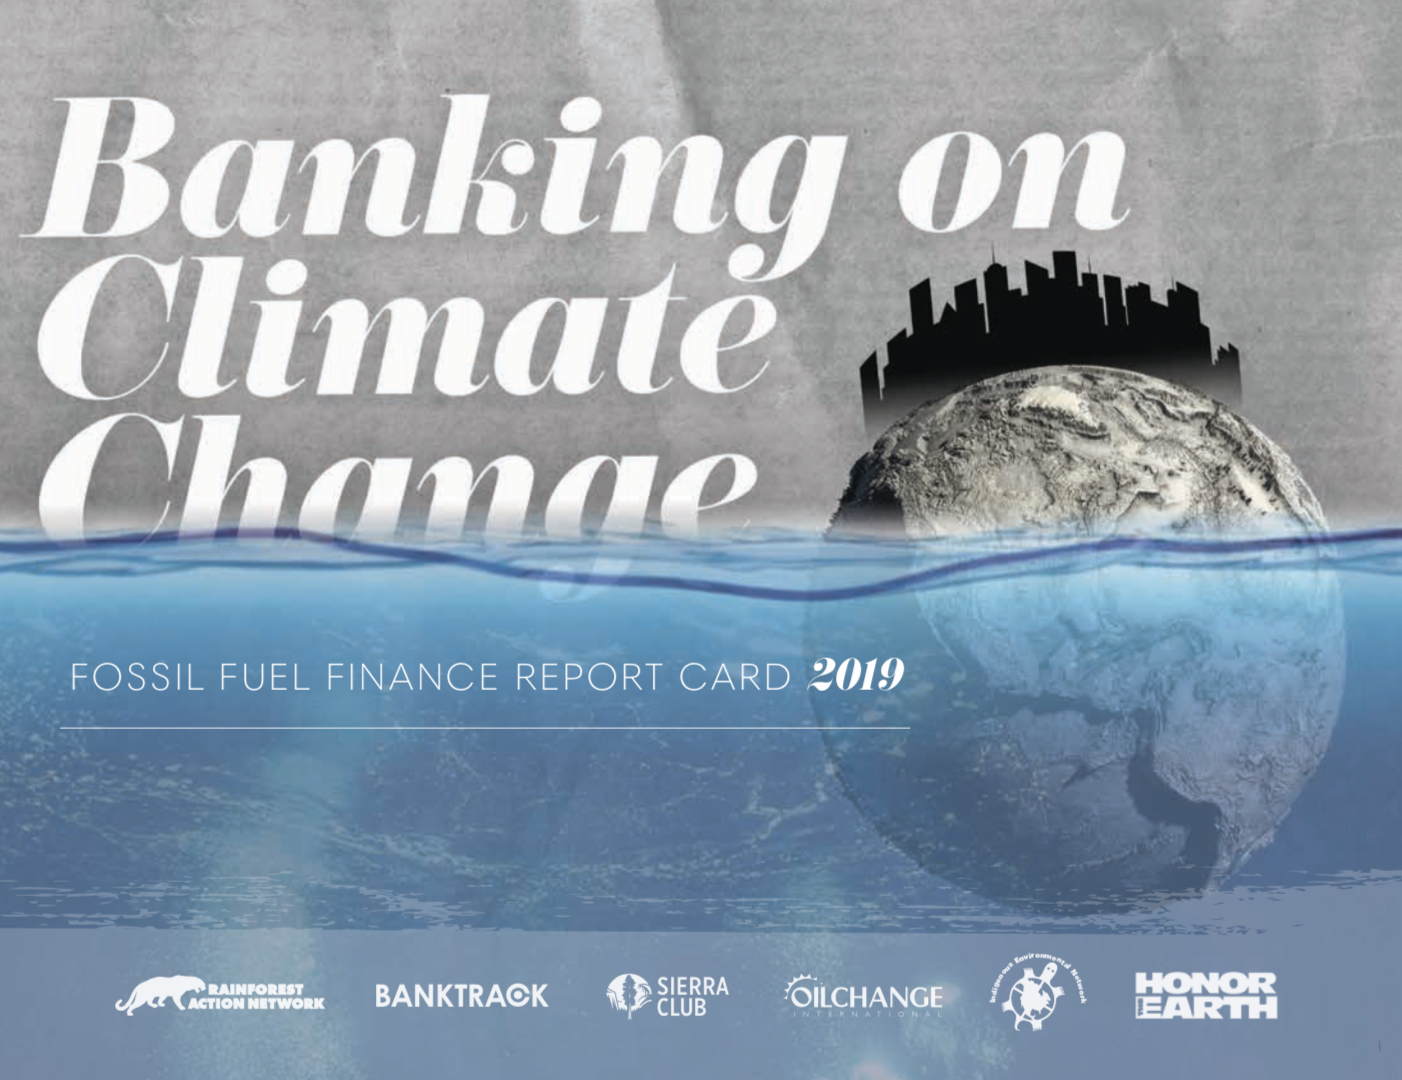 Banking on Climate Change 2019: Fossil Fuel Finance Report Card